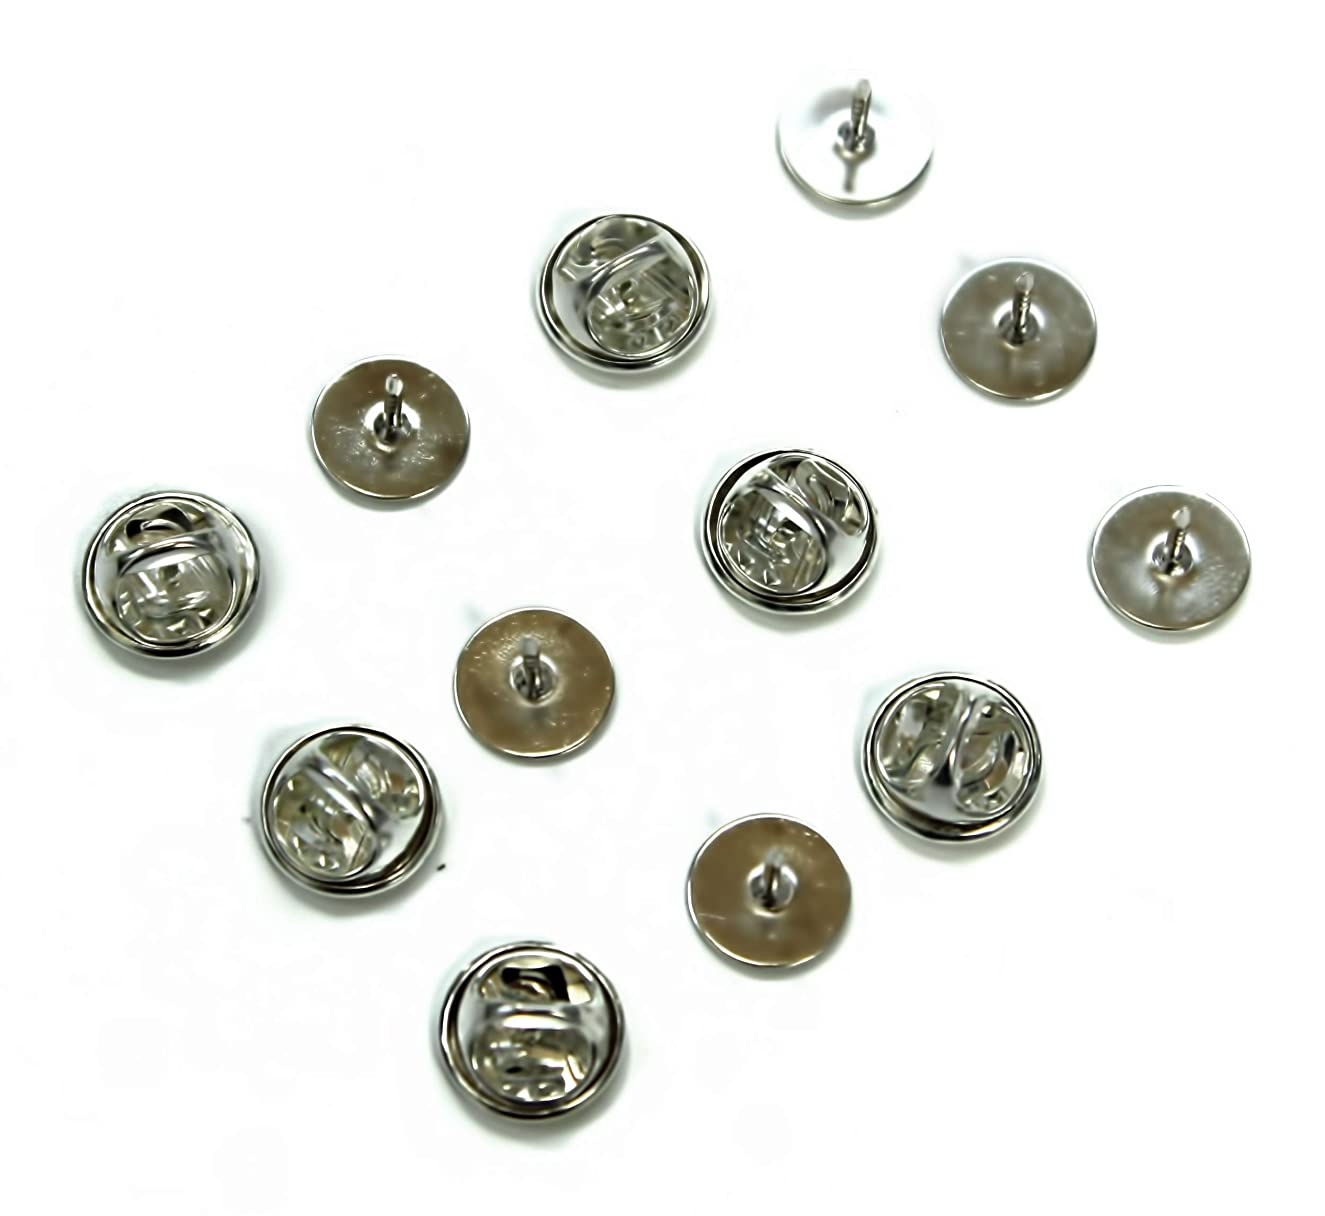 ALL in ONE Butterfly Clutch Tie Tacks Pin Backs with Blank Pins for DIY Craft (Silver 50 Pairs)